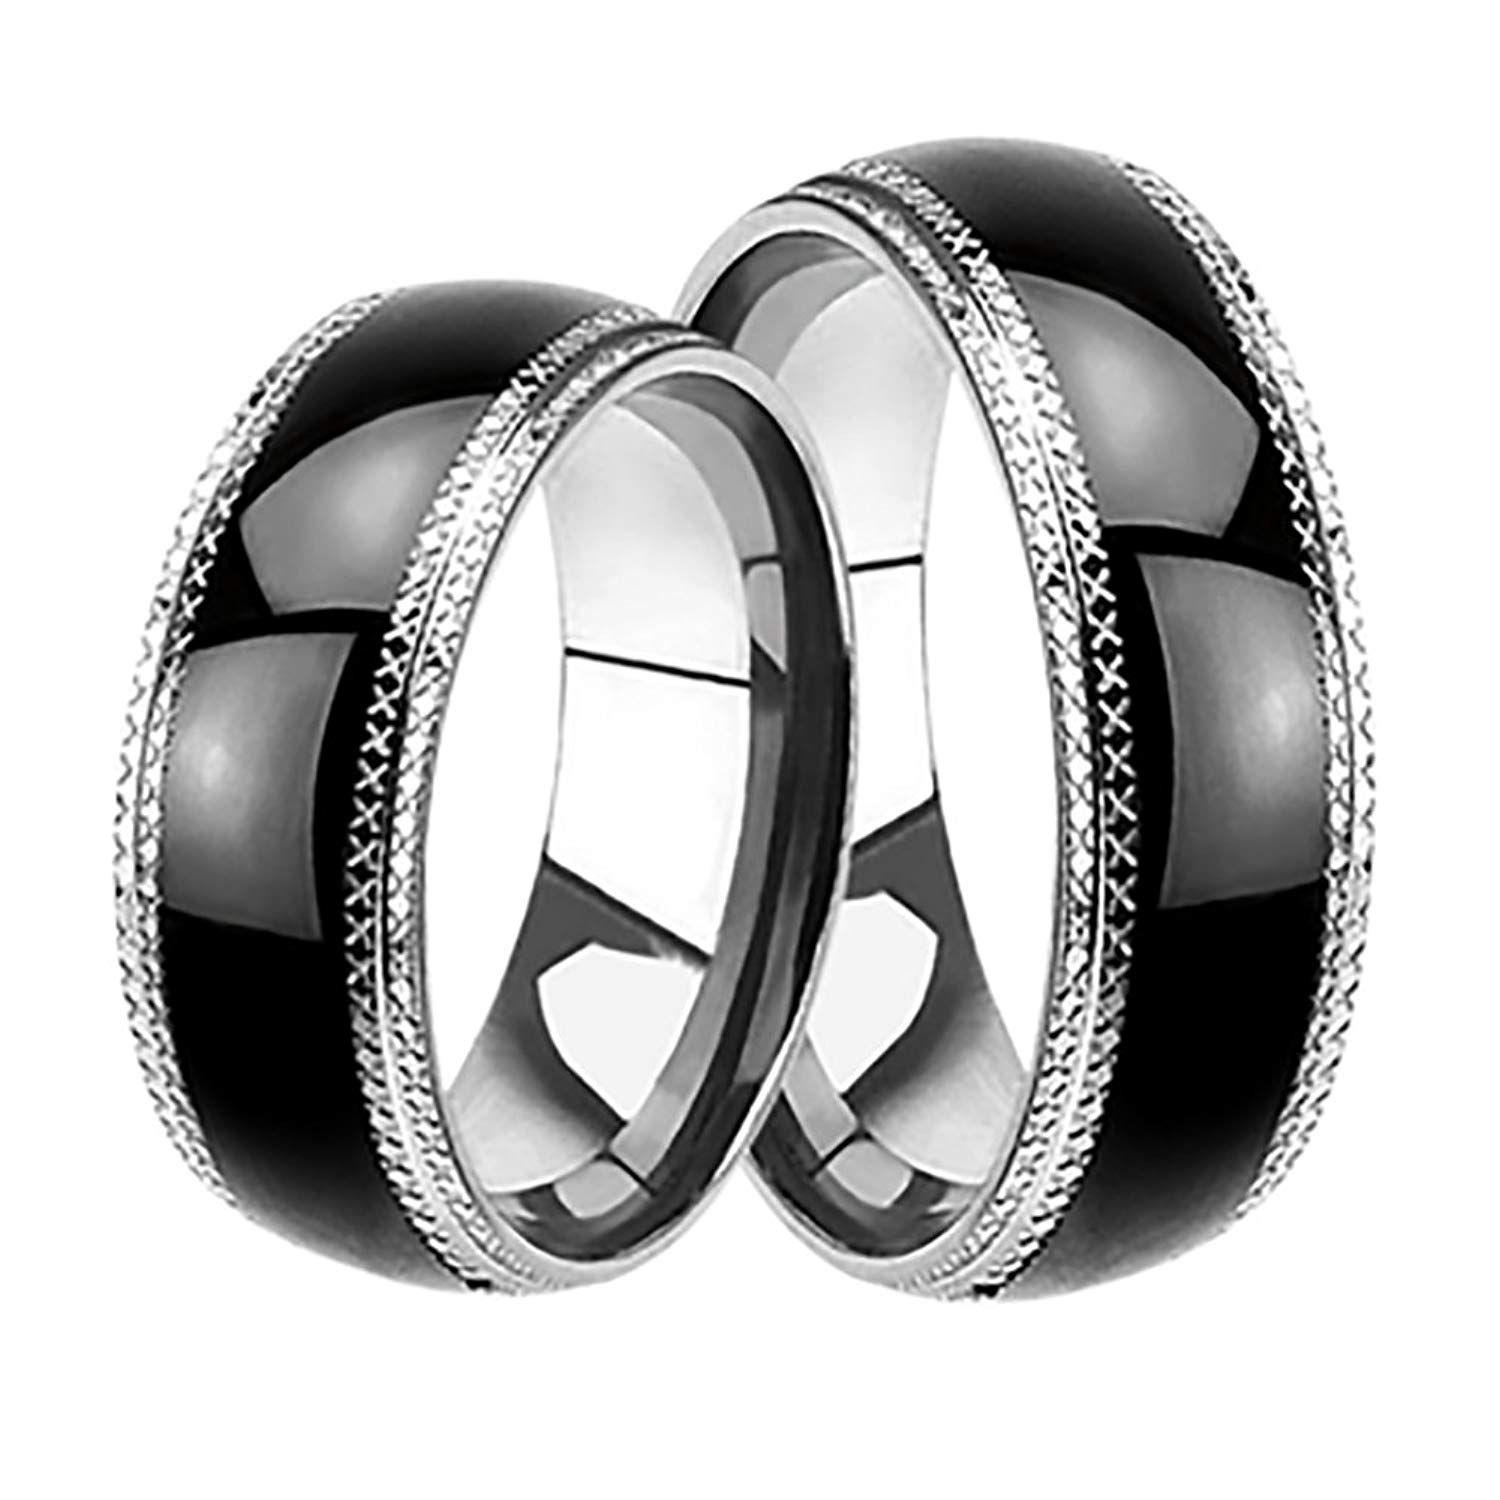 LaRaso and Co His and Hers Black Wedding Rings Set